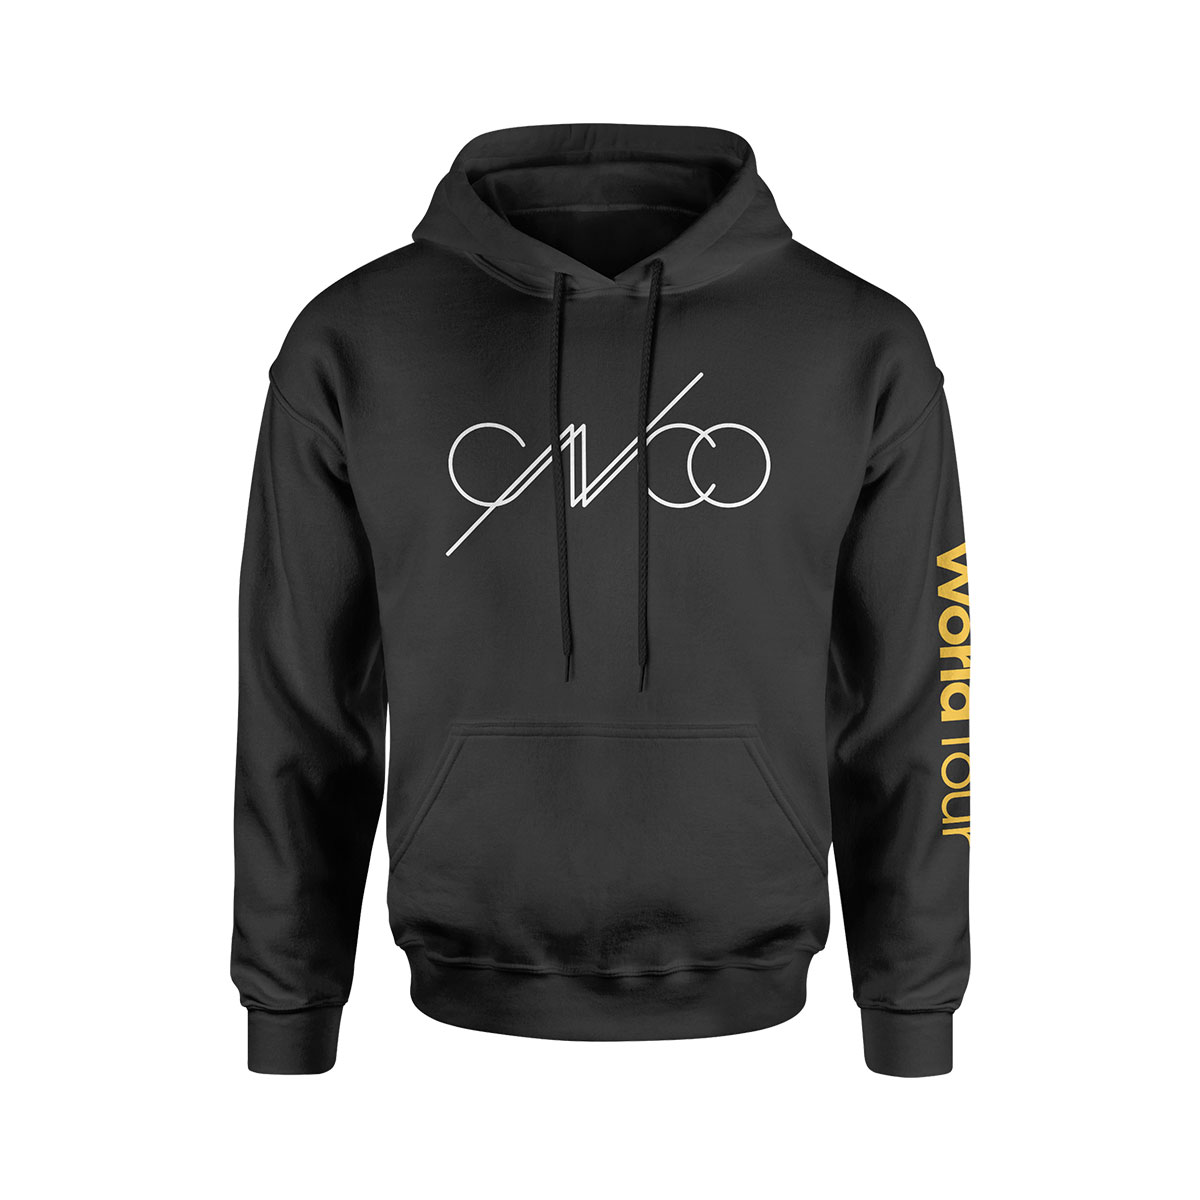 CNCO – 2019 North American Tour Hoodie